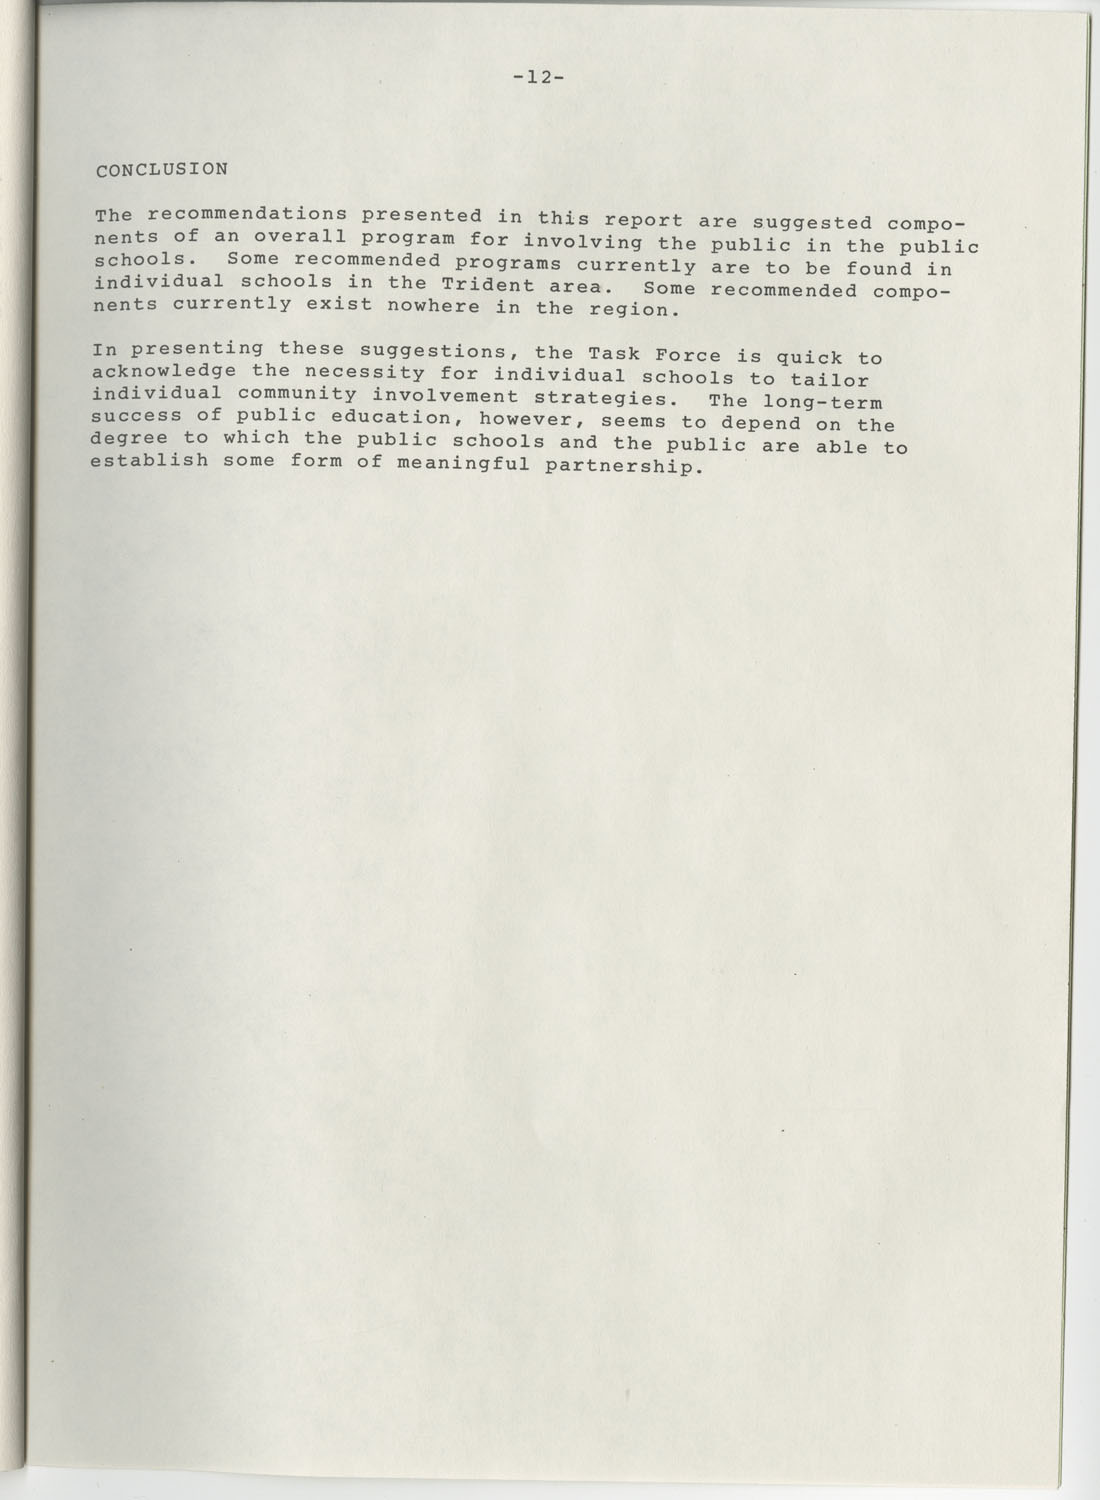 Trident 2000 Task Force Reports on Education, June 1978, Page 12